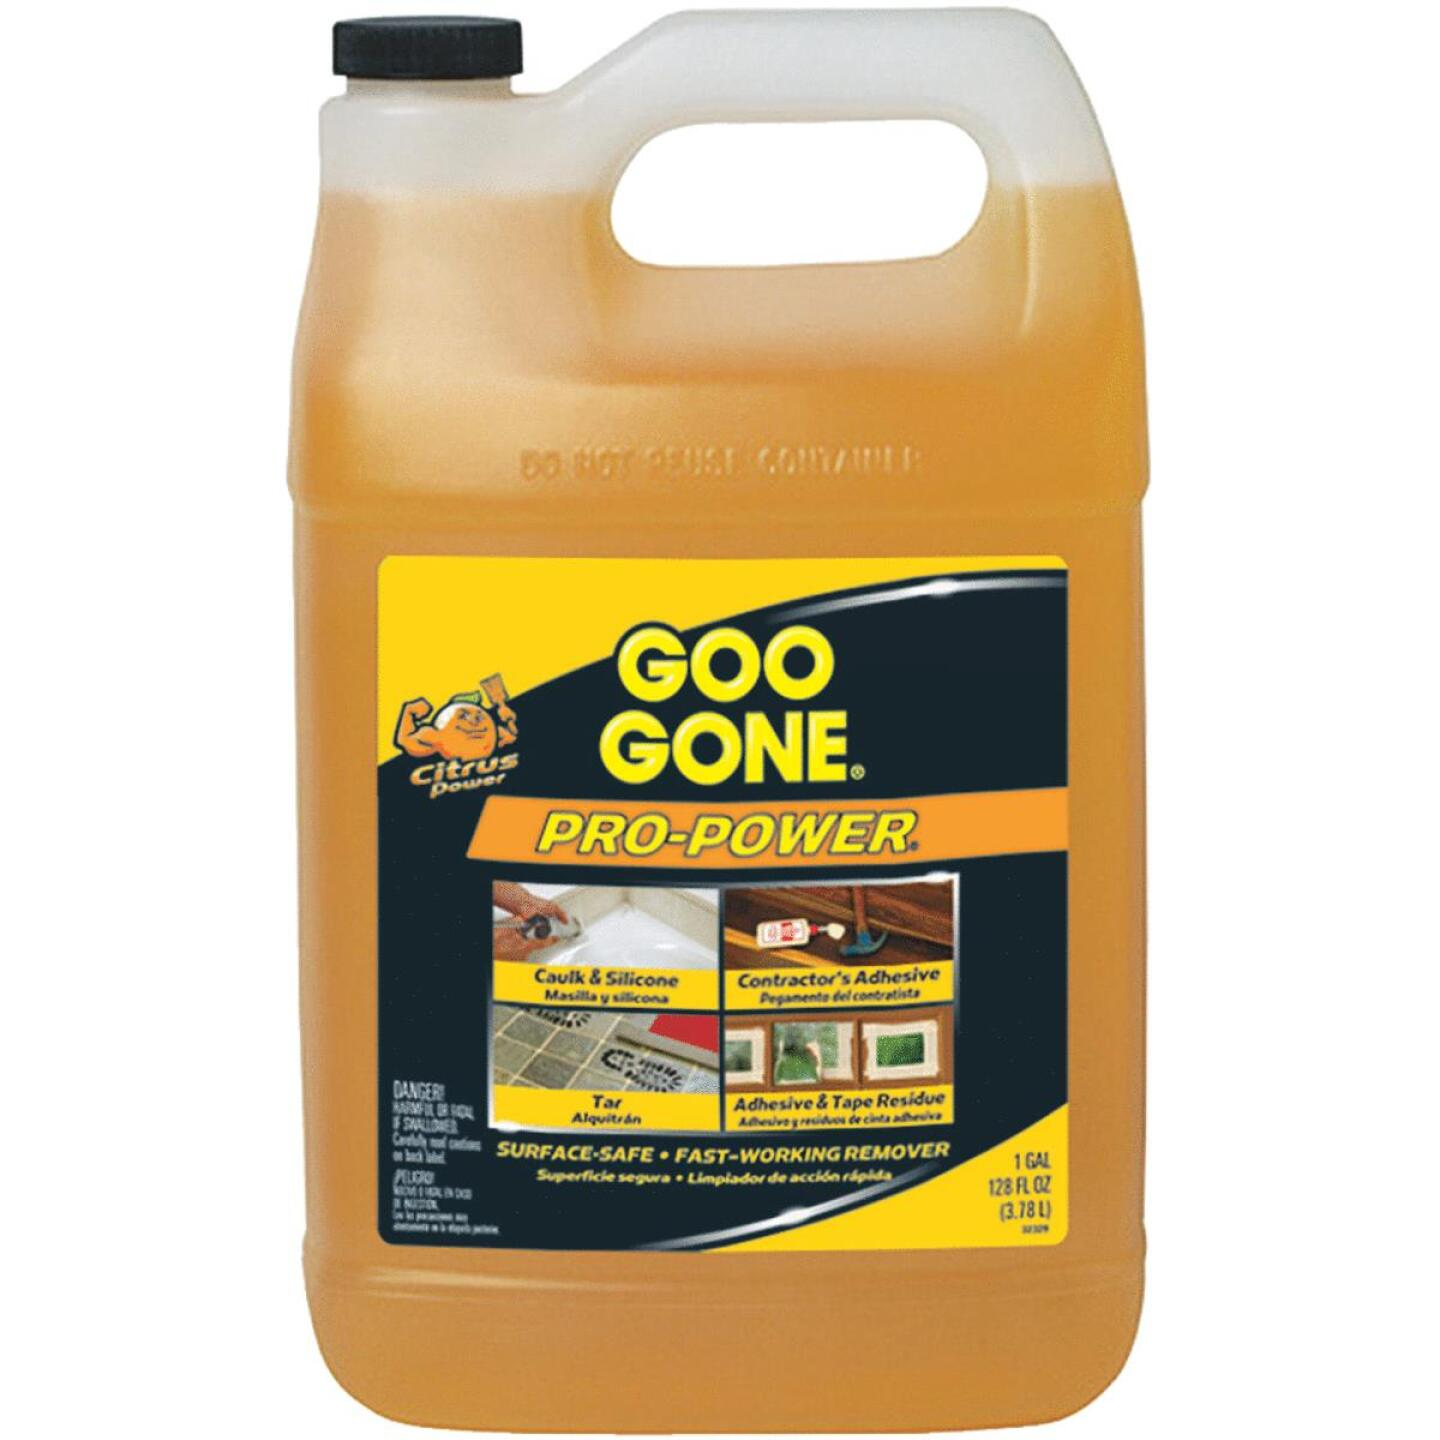 Goo Gone 1 Gal. Pro-Power Adhesive Remover Image 196